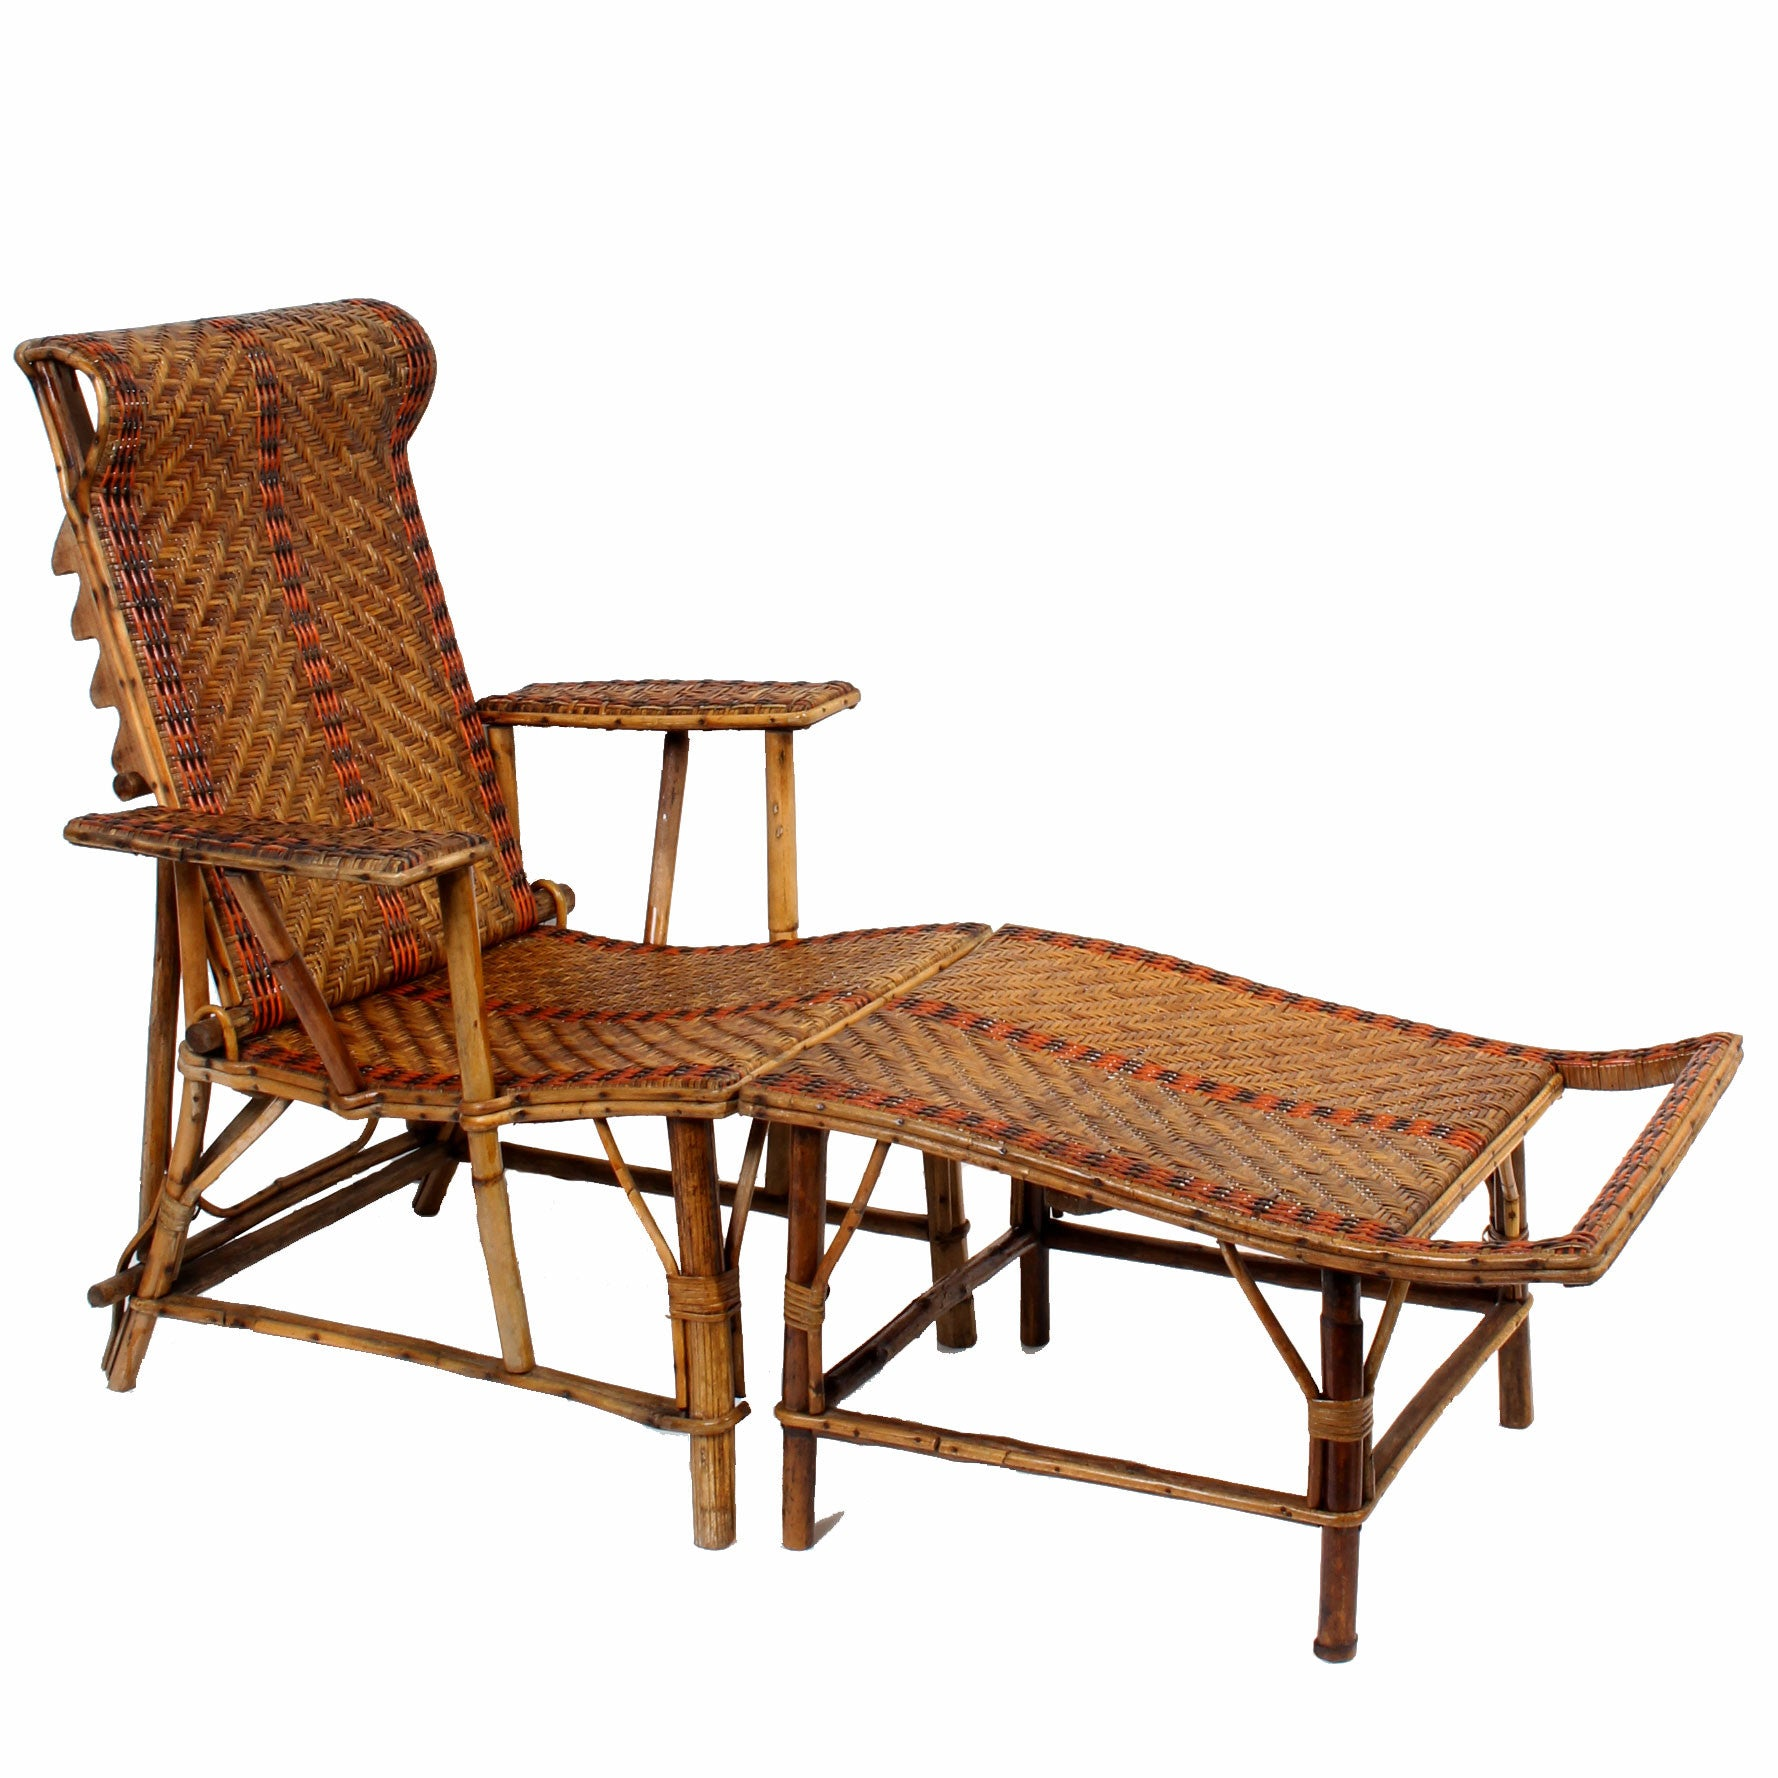 vintage french bamboo rattan chaise lounge fatto a mano antiques. Black Bedroom Furniture Sets. Home Design Ideas